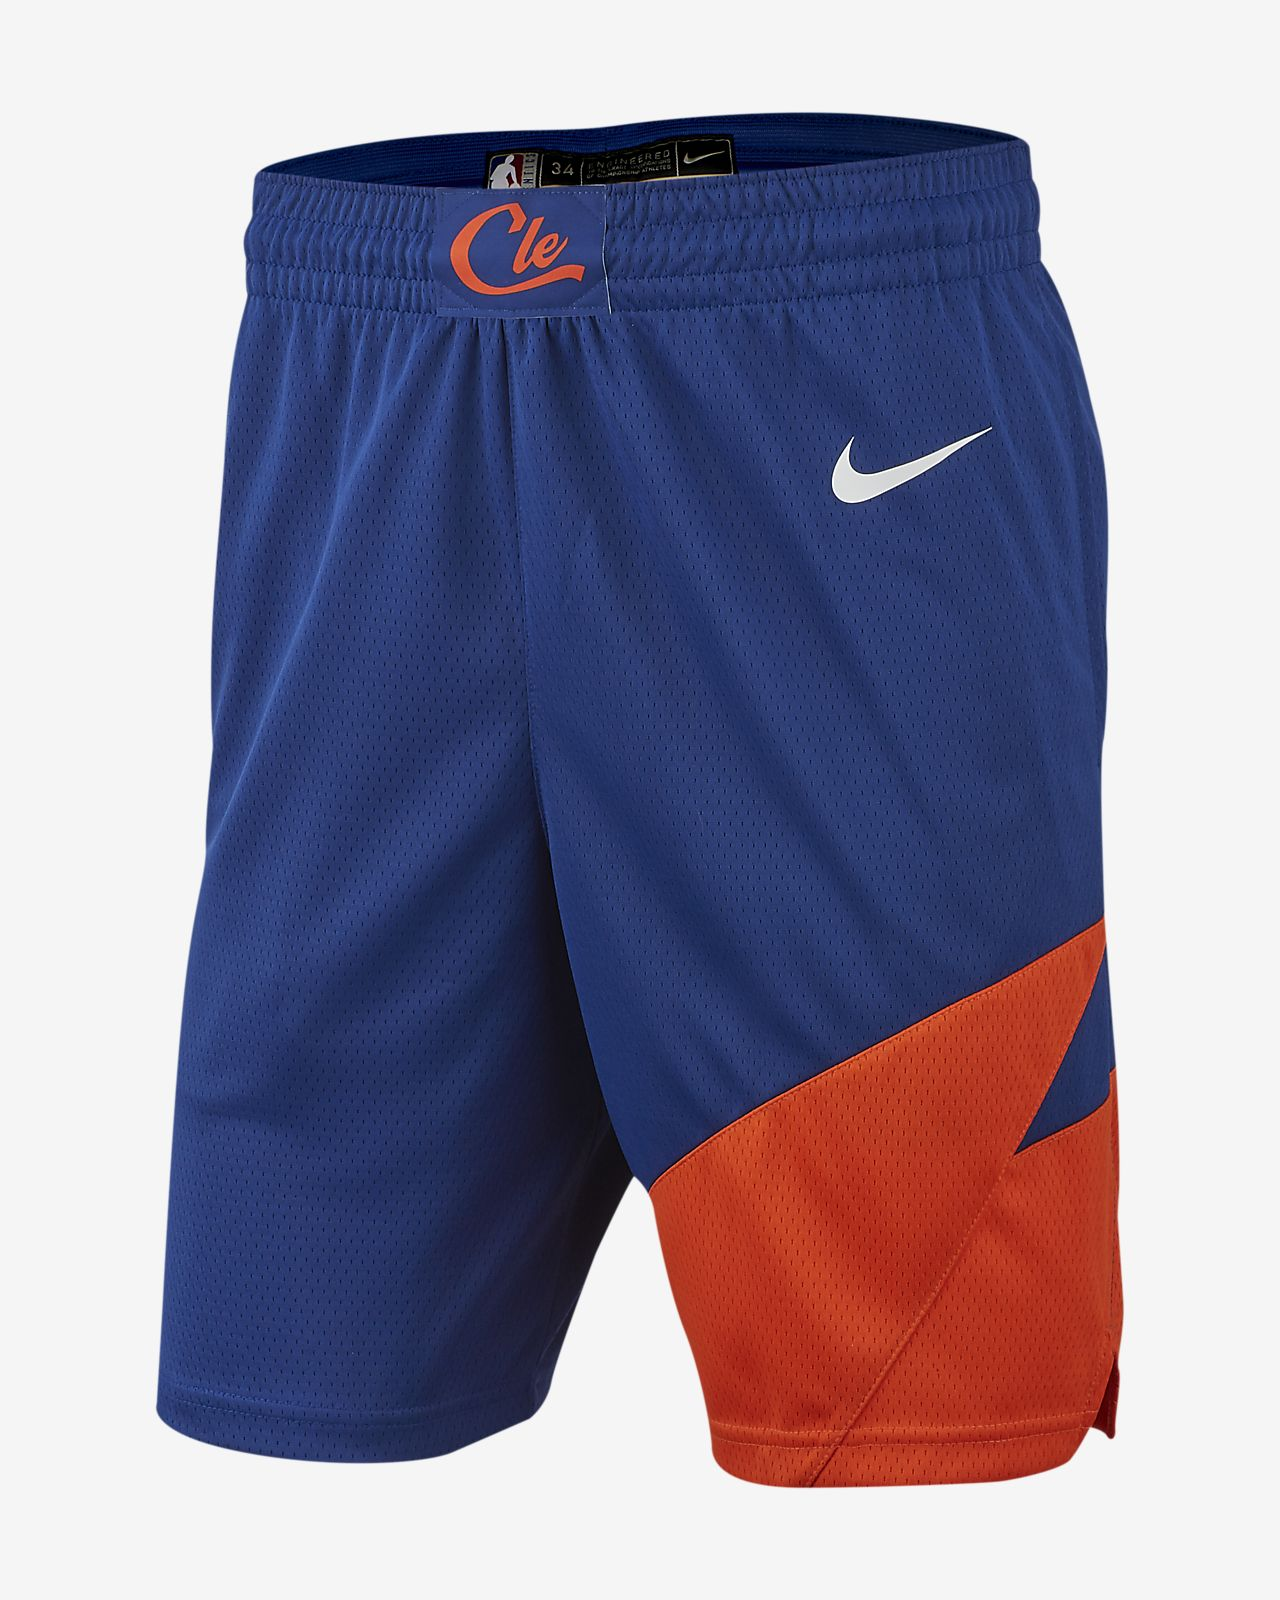 9dda85cf575 ... Cleveland Cavaliers City Edition Swingman Men's Nike NBA Shorts